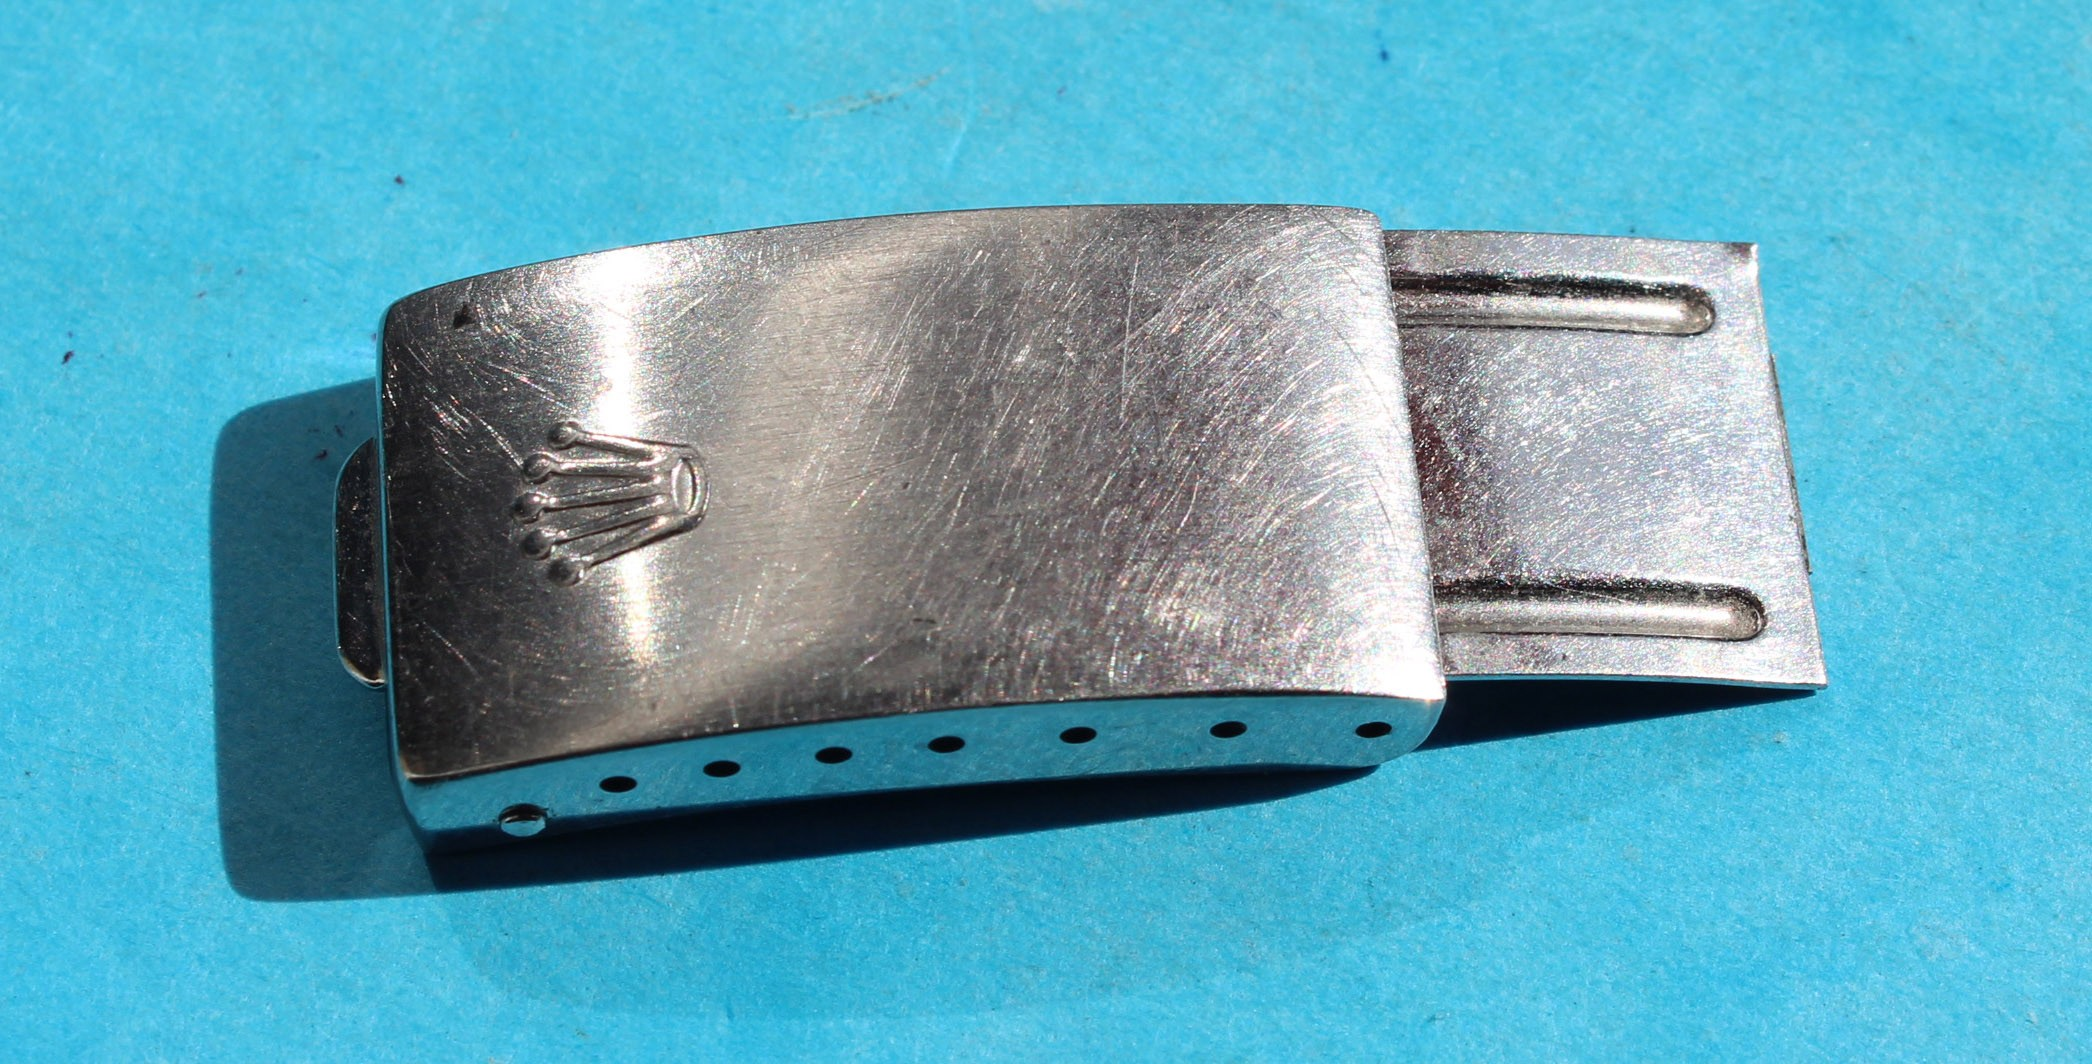 ROLEX USED FOR RESTORE, REPAIR VINTAGE WATCHES FOLDED CLASP DEPLOYANT Ref 78350 fits on 19mm BRACELETS OYSTER